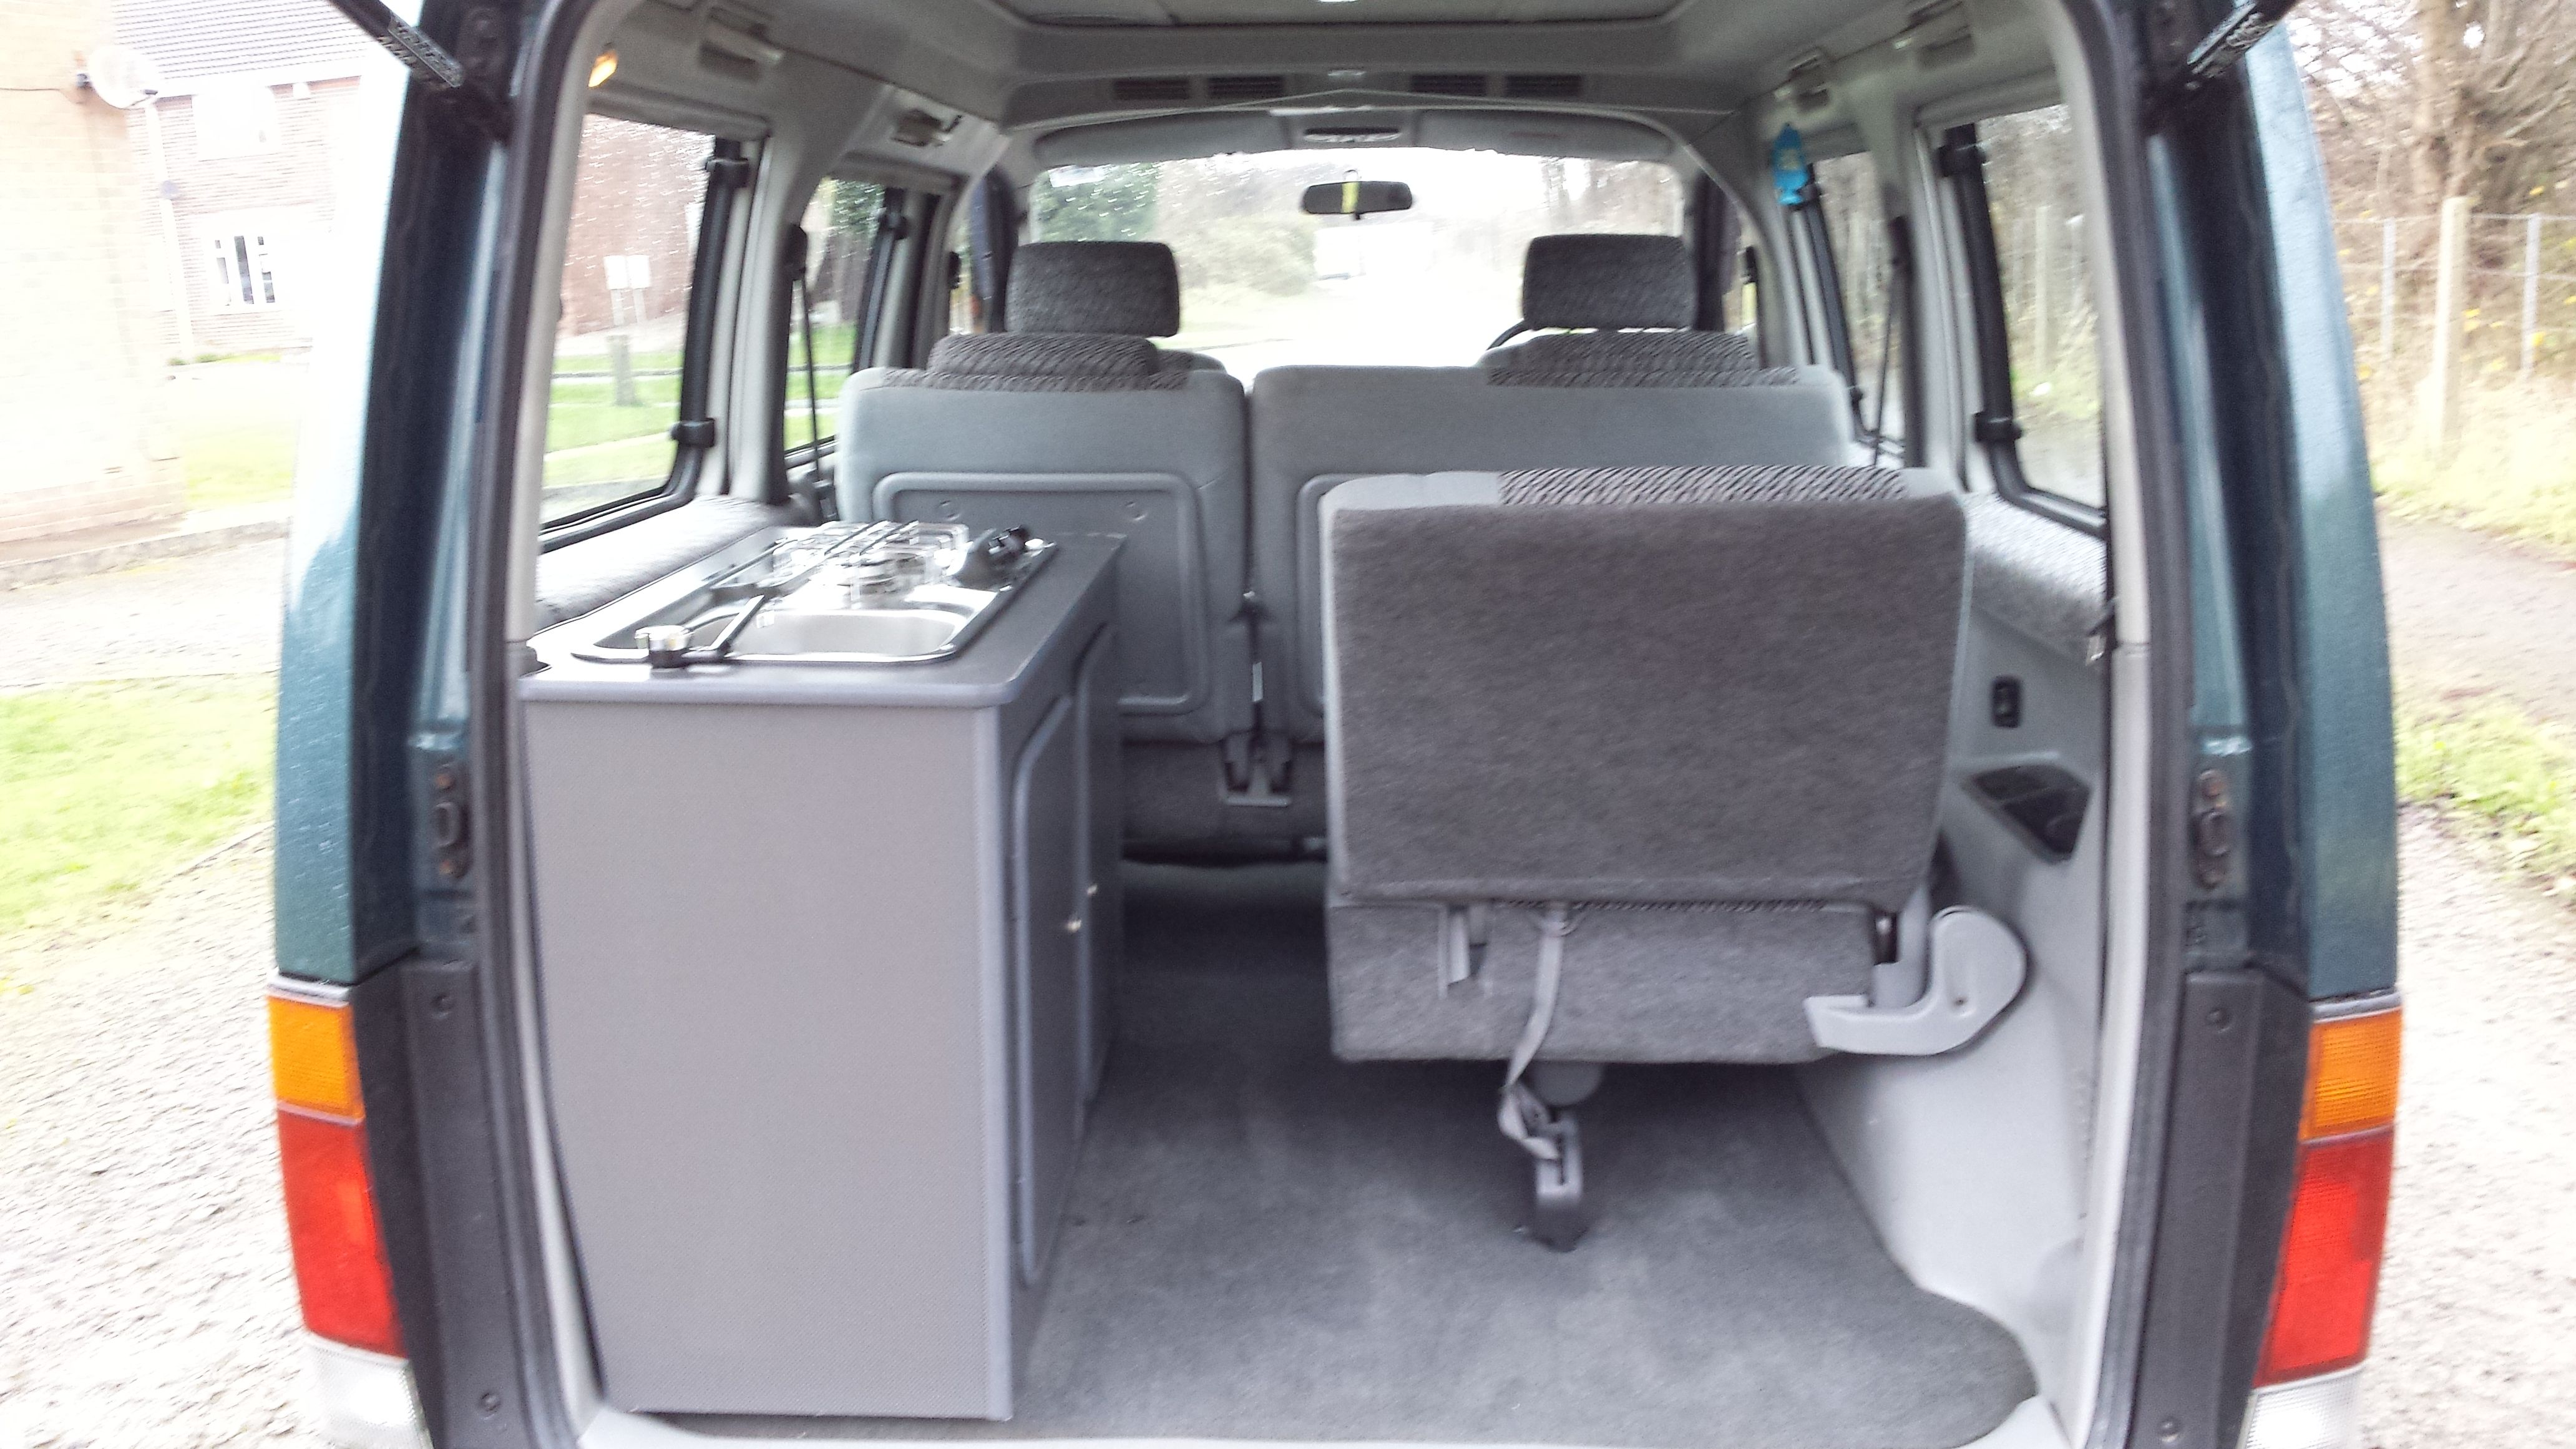 Mazda Bono Camper Van Rear View With Fold Up 6th Seat On Right Carbon Look Kitchen On Left Delica Van Bongo Camper Van For Sale